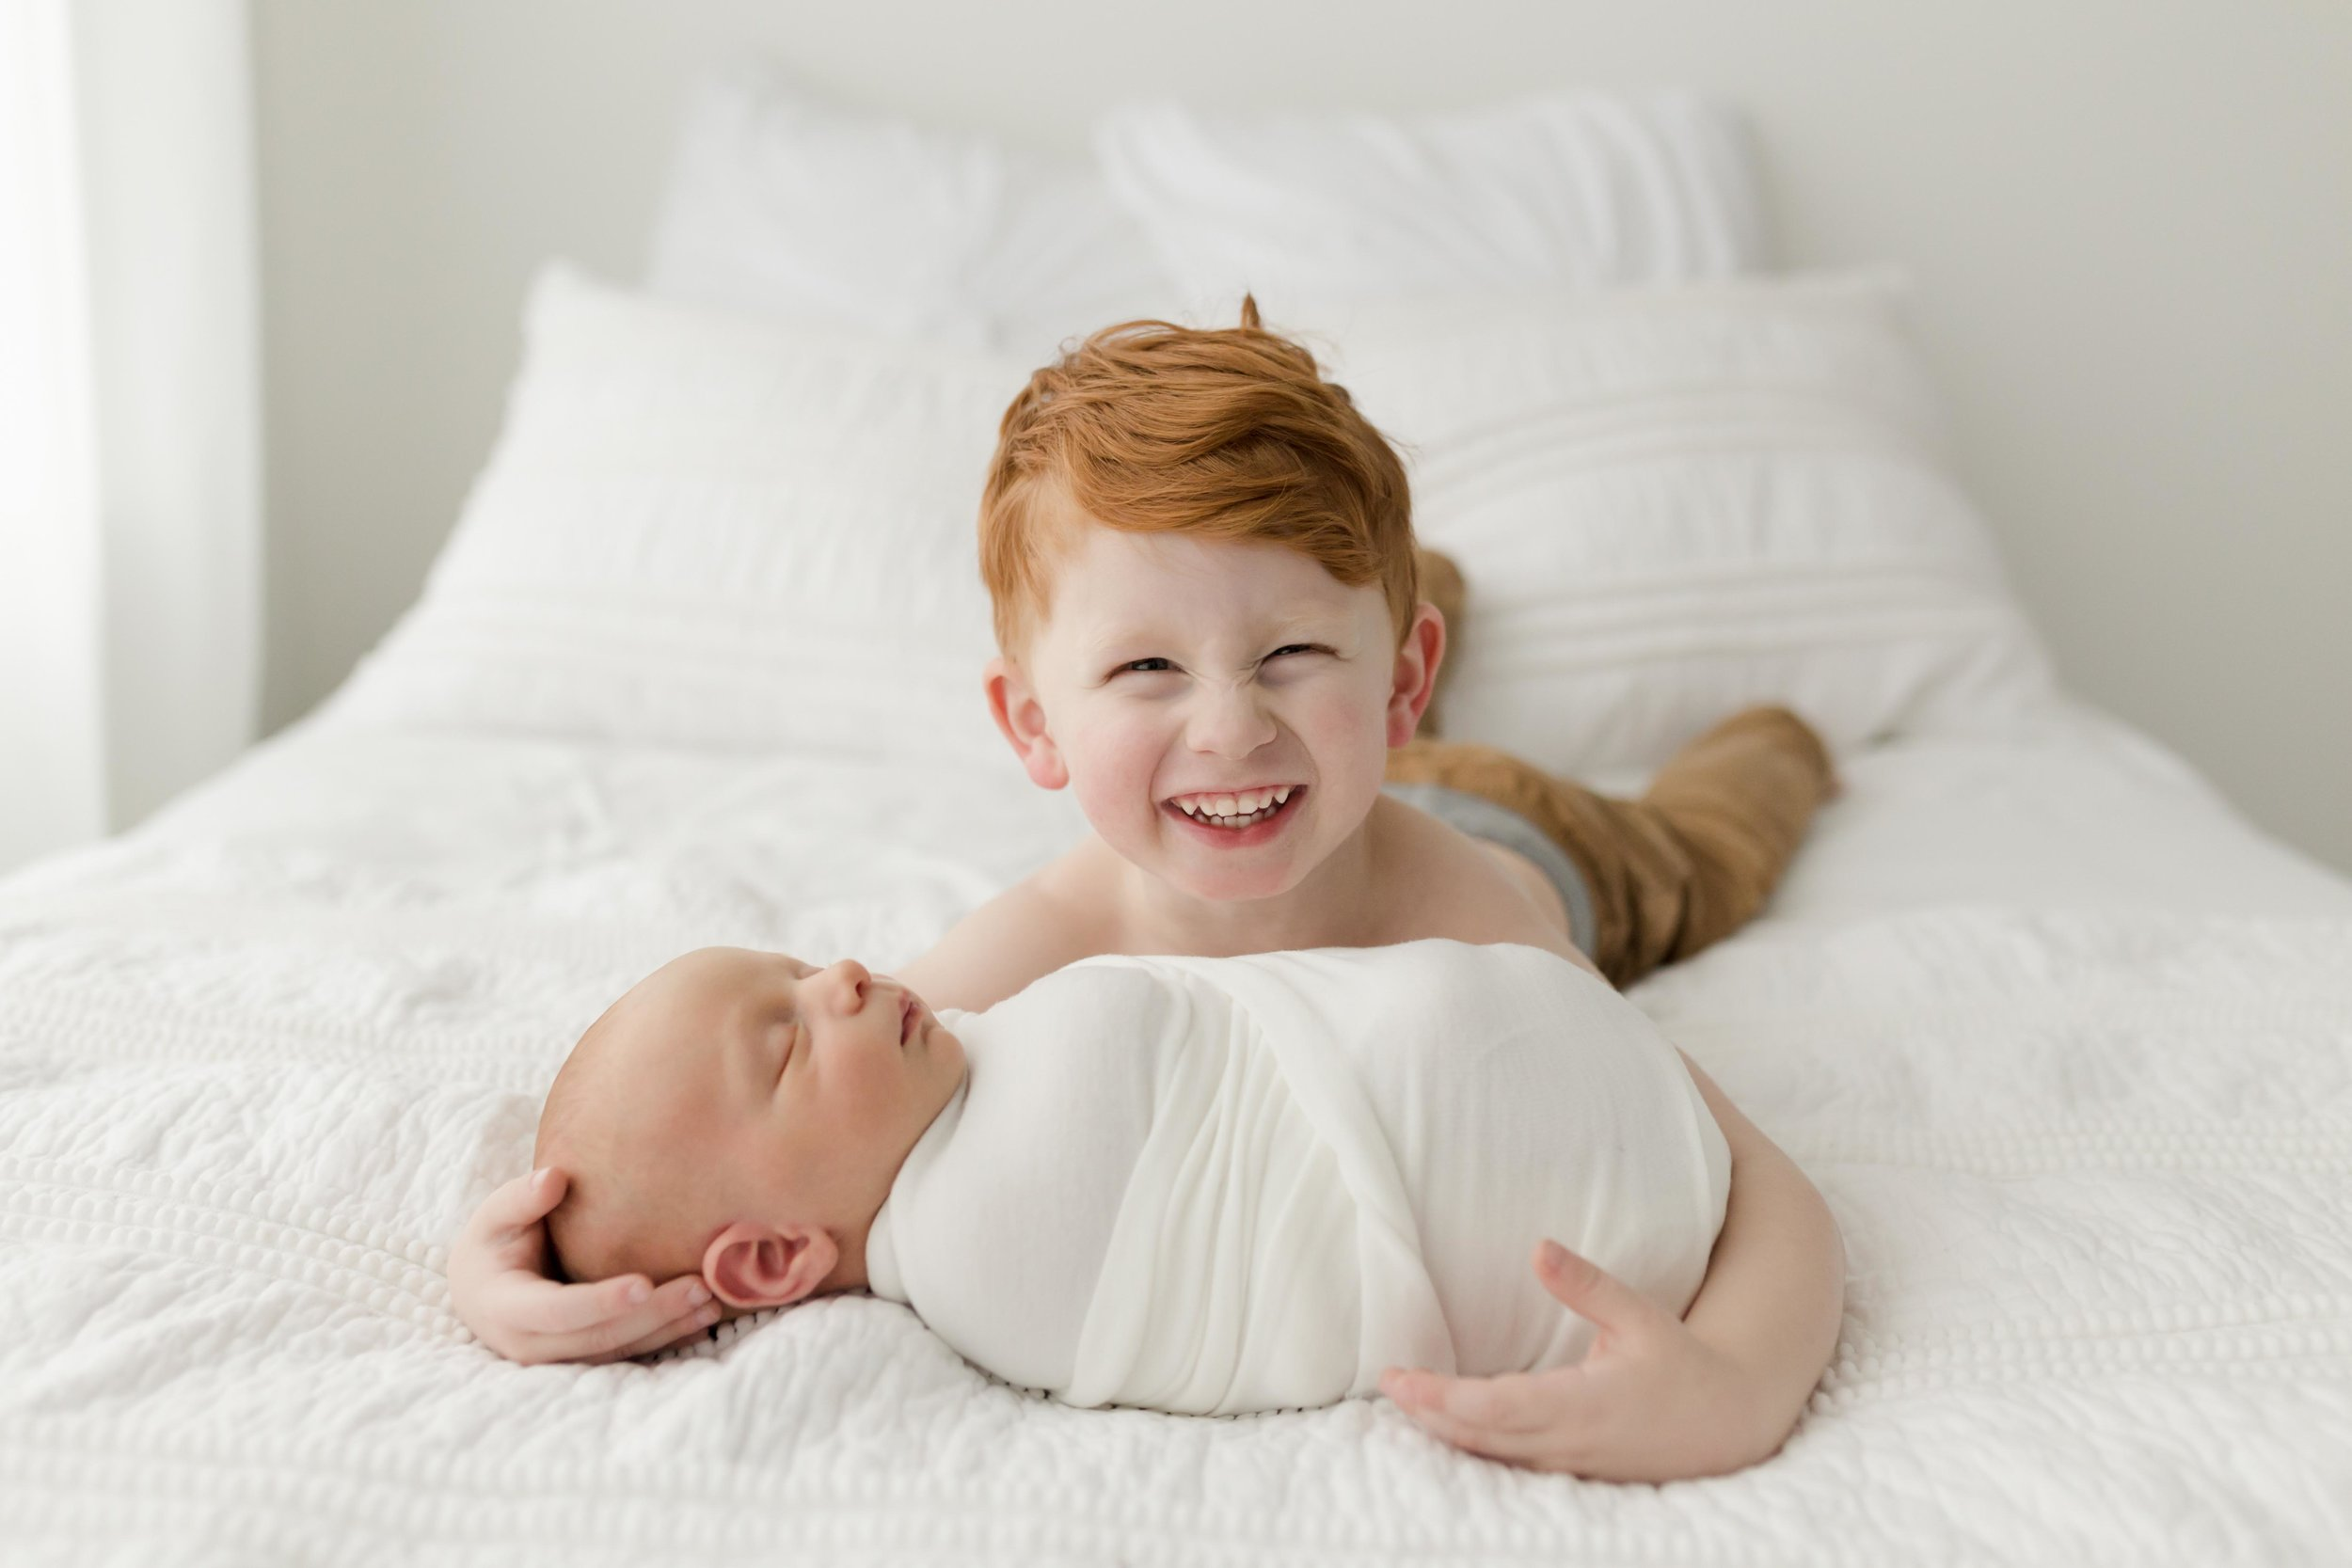 Newborn_LouLouMeBlue_Cookeville_Tennessee_Photographer-3.jpg